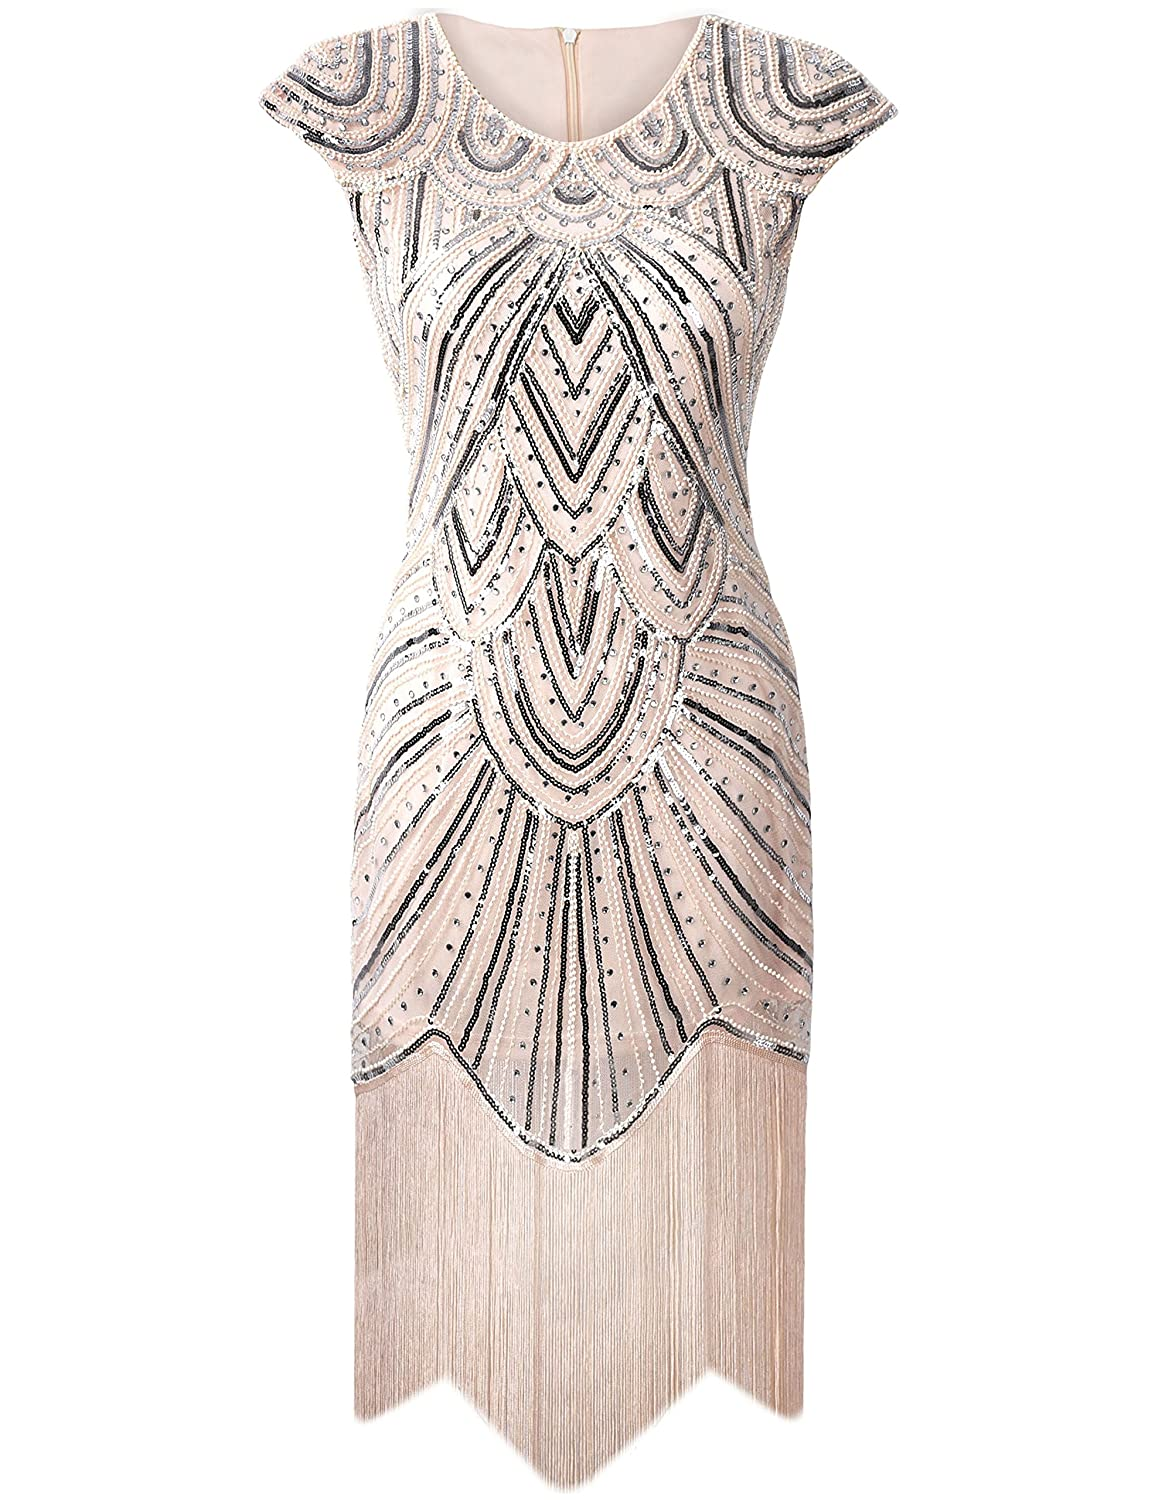 1920s Costumes: Flapper, Great Gatsby, Gangster Girl  1920s Gastby Diamond Sequined Embellished Fringed Flapper Dress £40.99 AT vintagedancer.com